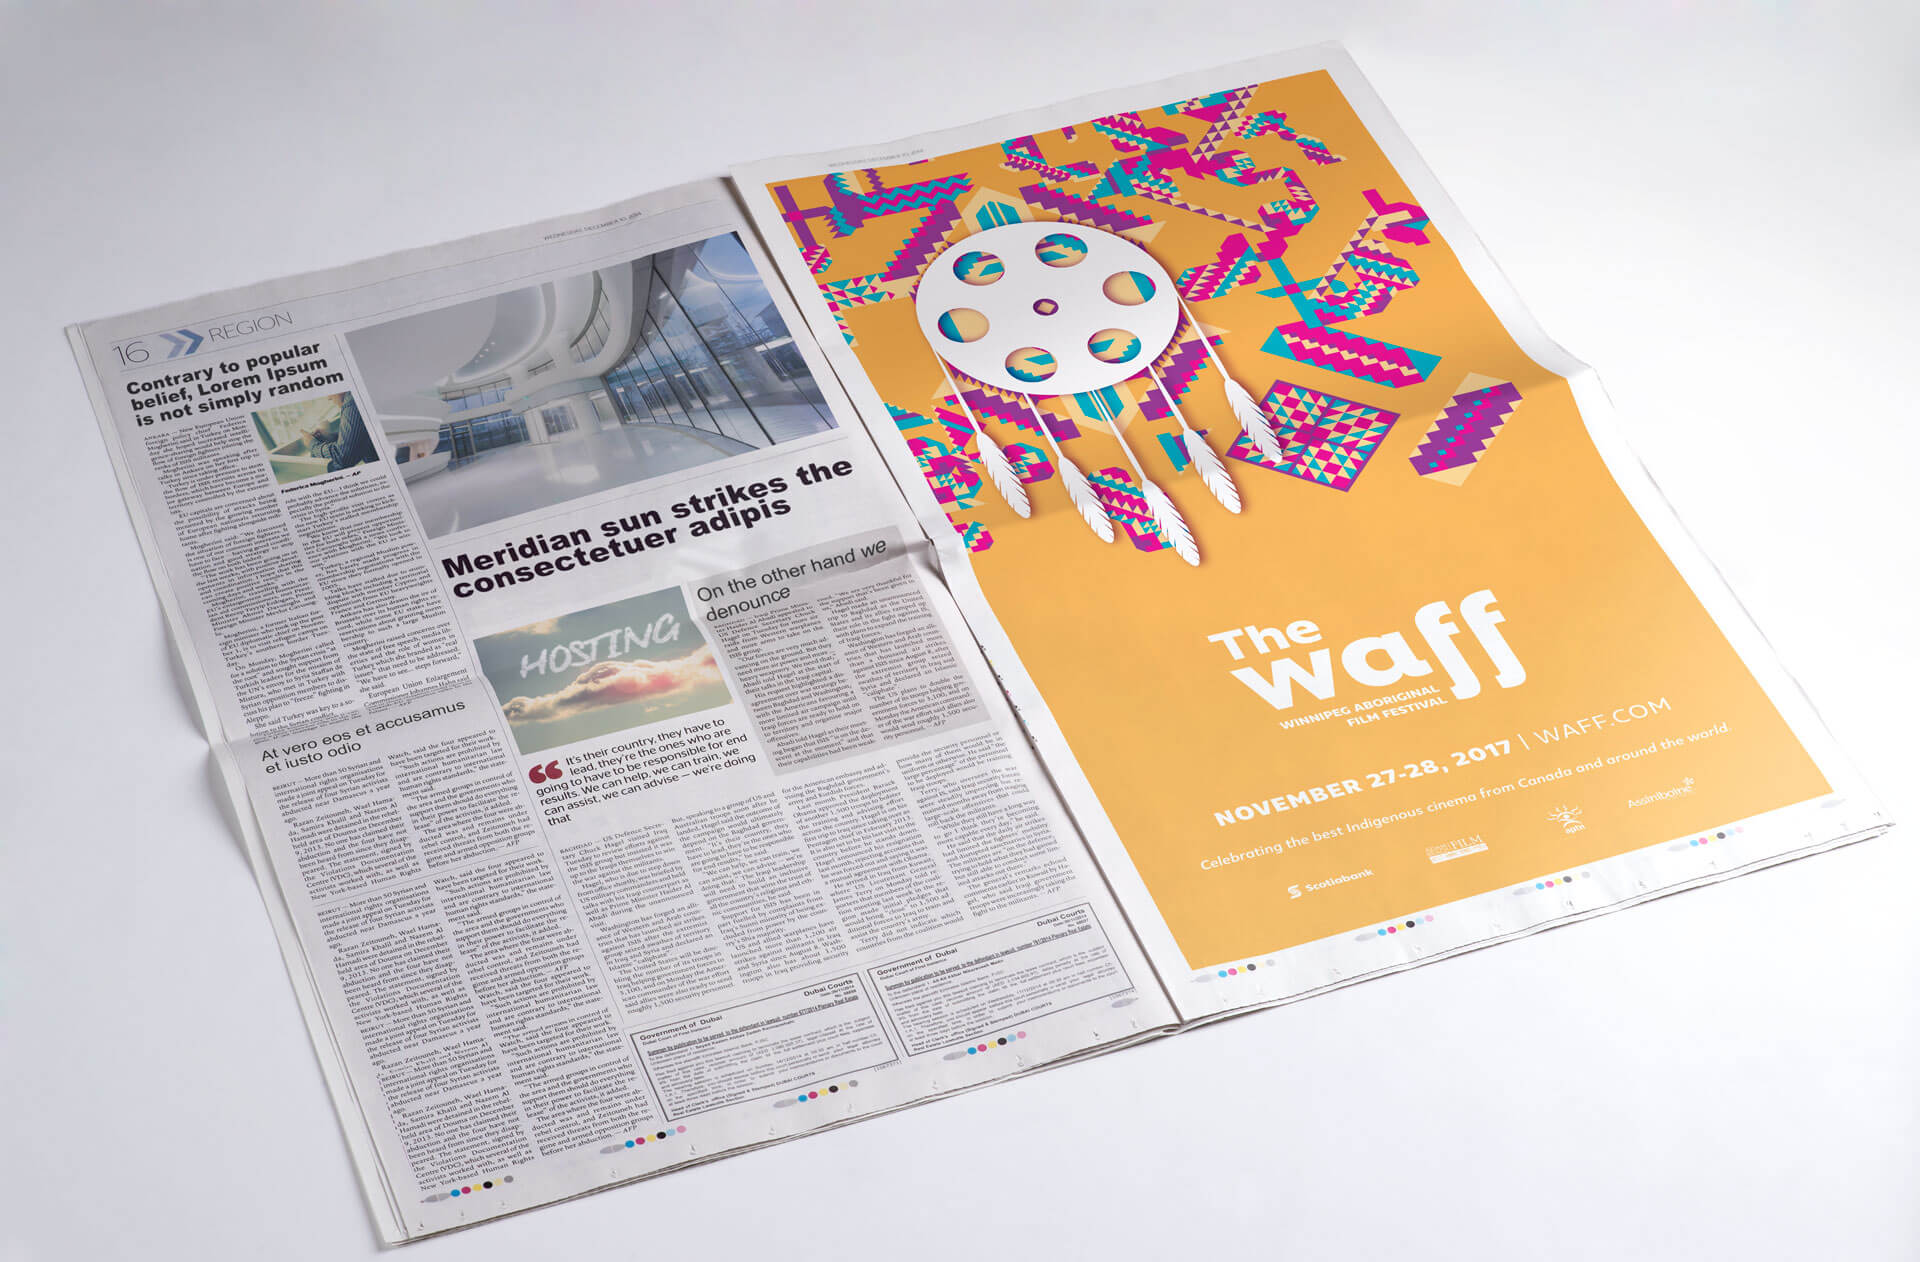 Photo of a full page newspaper advertisement for the Winnipeg Aboriginal Film Festival The Waff